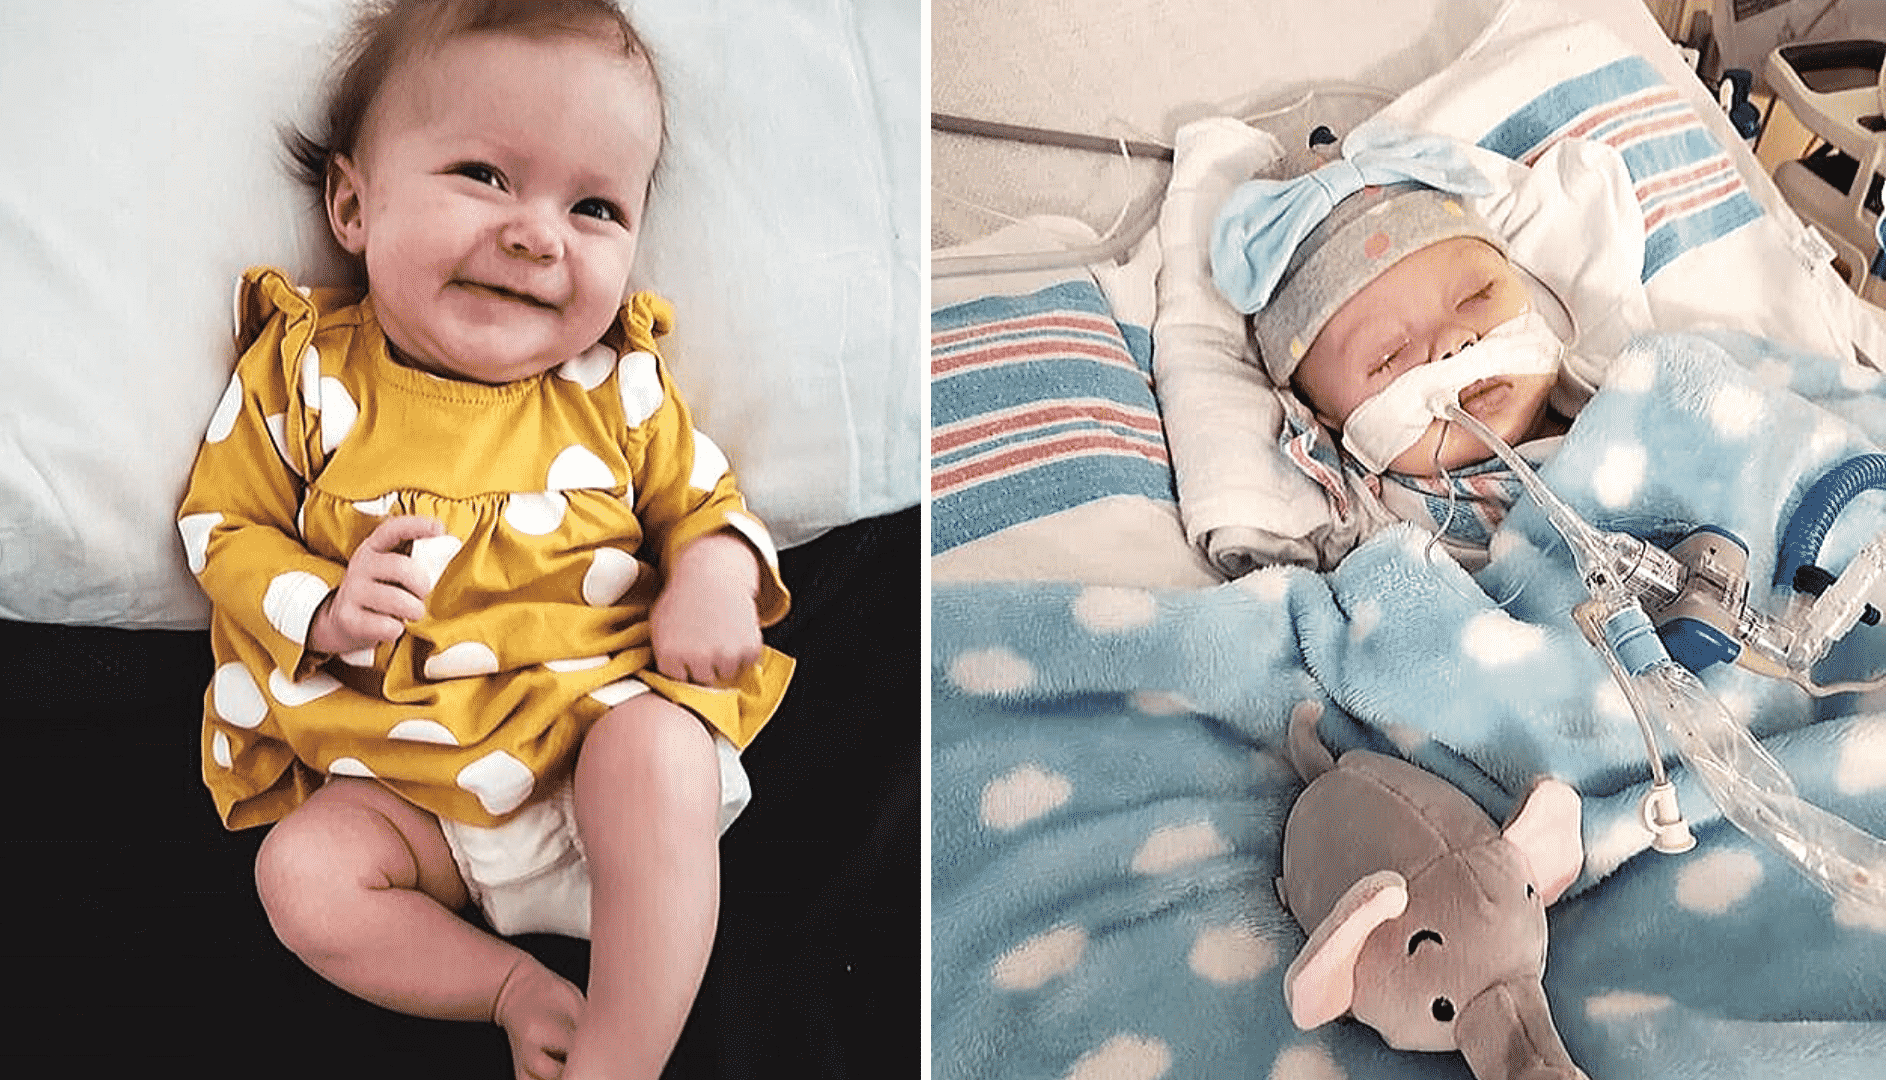 A Heartbroken Mother Says Her Two-Months-Old Daughter Suddenly Stopped Breathing Due to COVID-19!